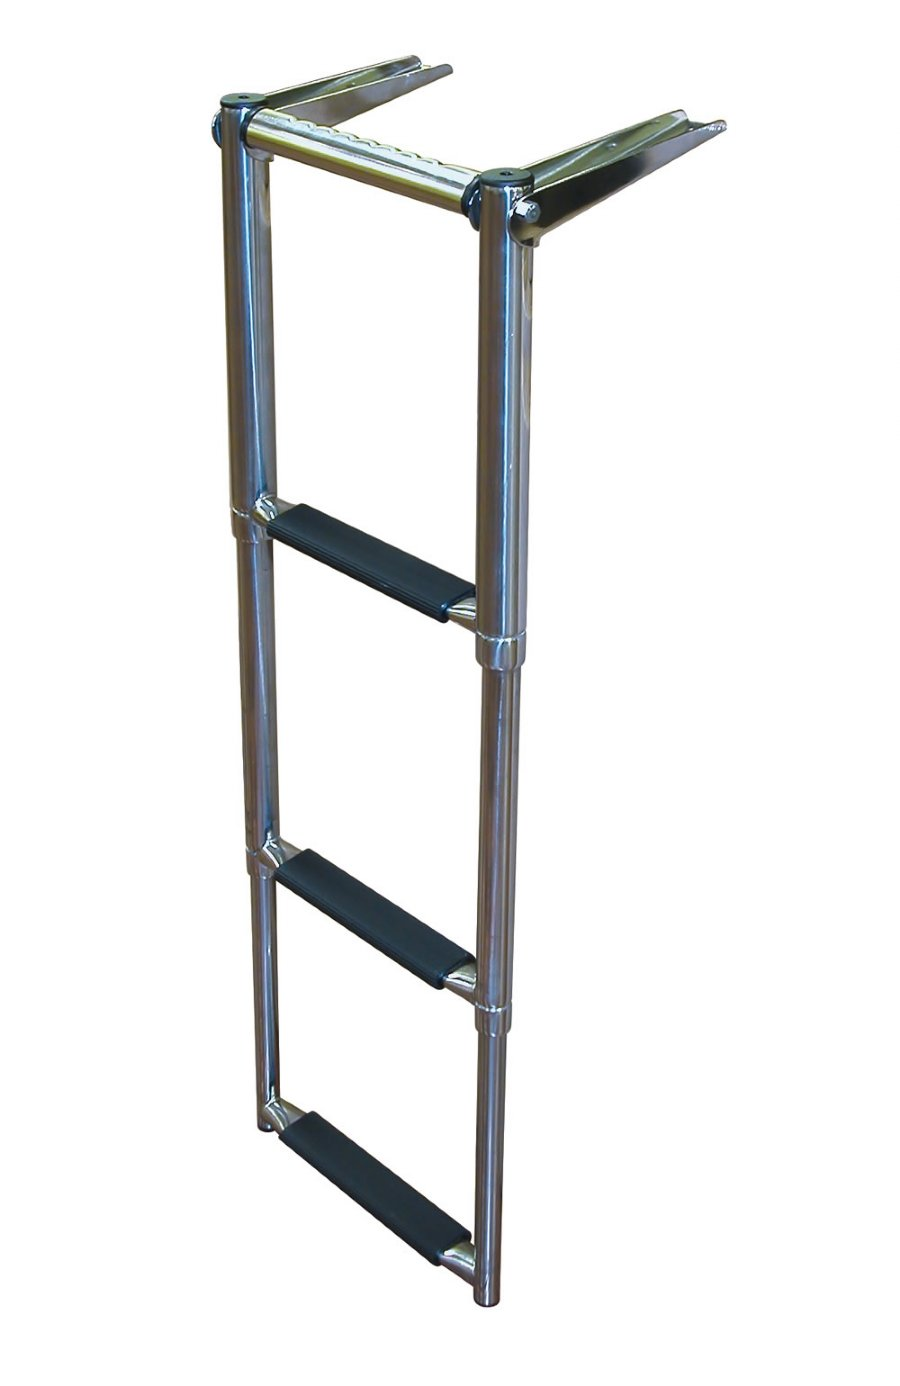 2 Step Over Platform Telescoping Boat Ladder 2 Step